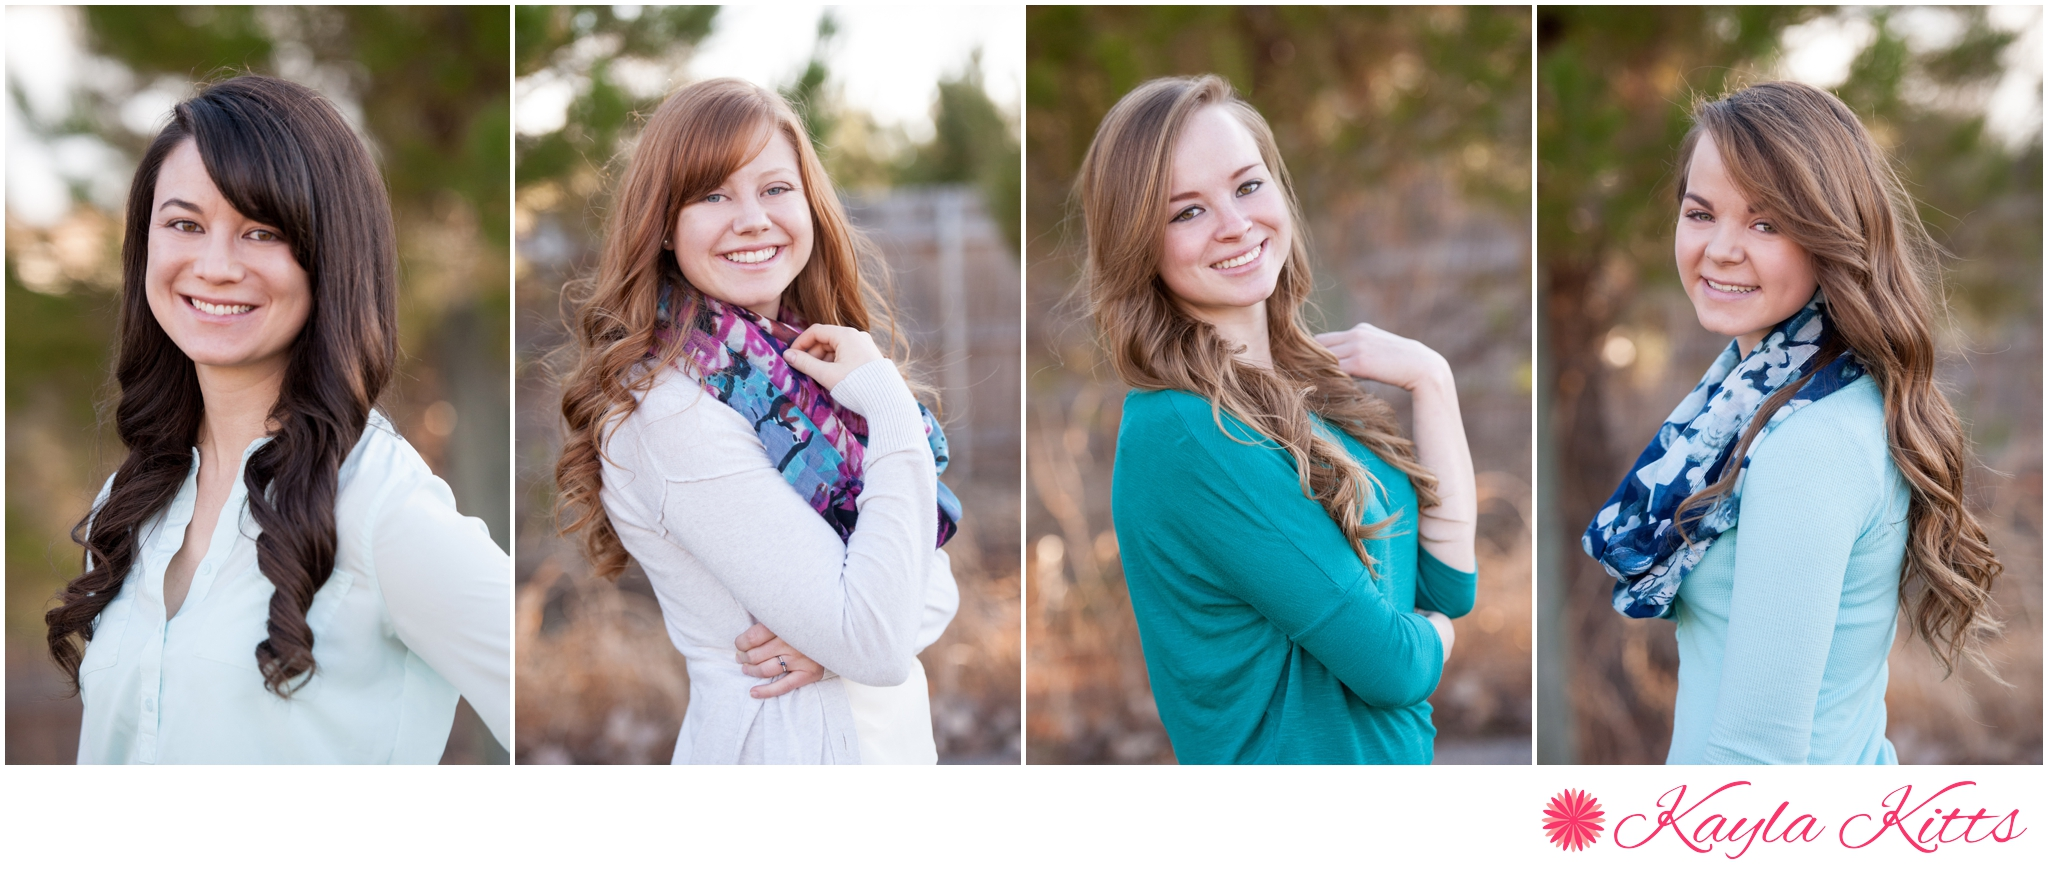 kayla kitts photography - baca family 2014-053.jpg